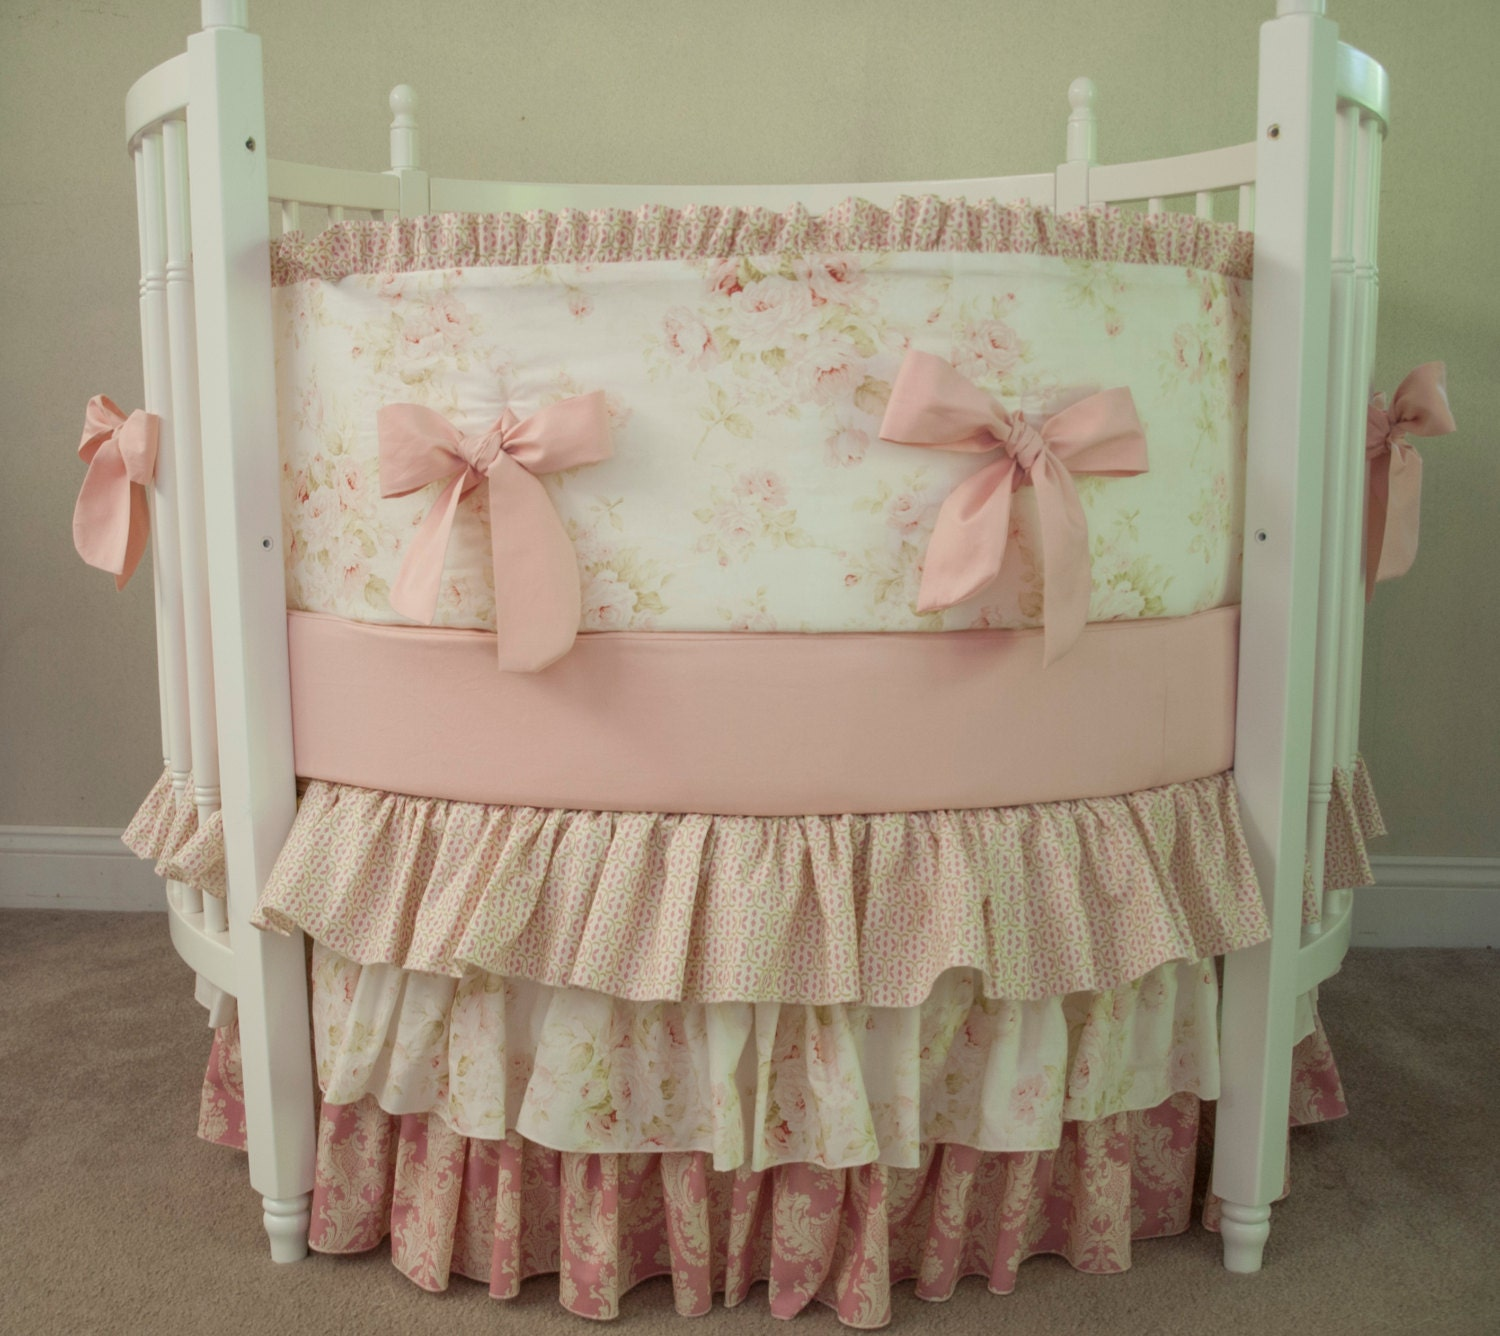 Round Crib Baby Girl Bedding Vintage Floral Shabby Chic